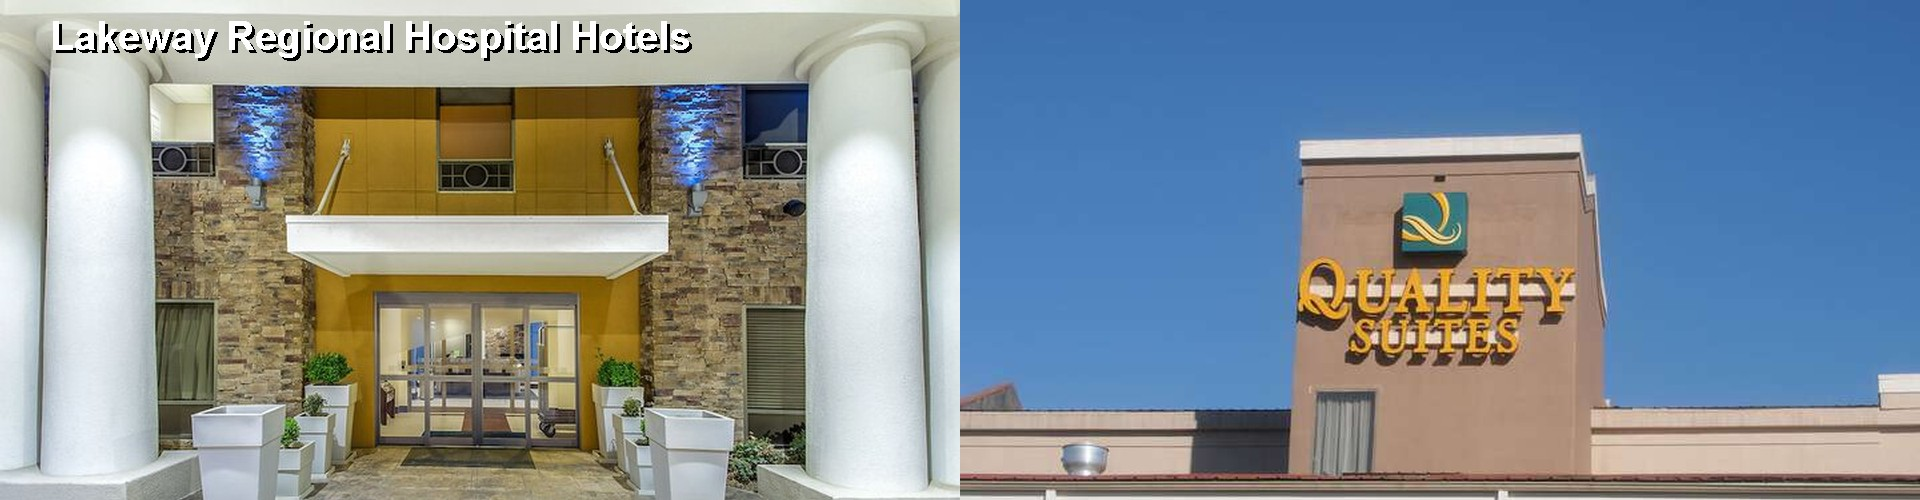 5 Best Hotels Near Lakeway Regional Hospital